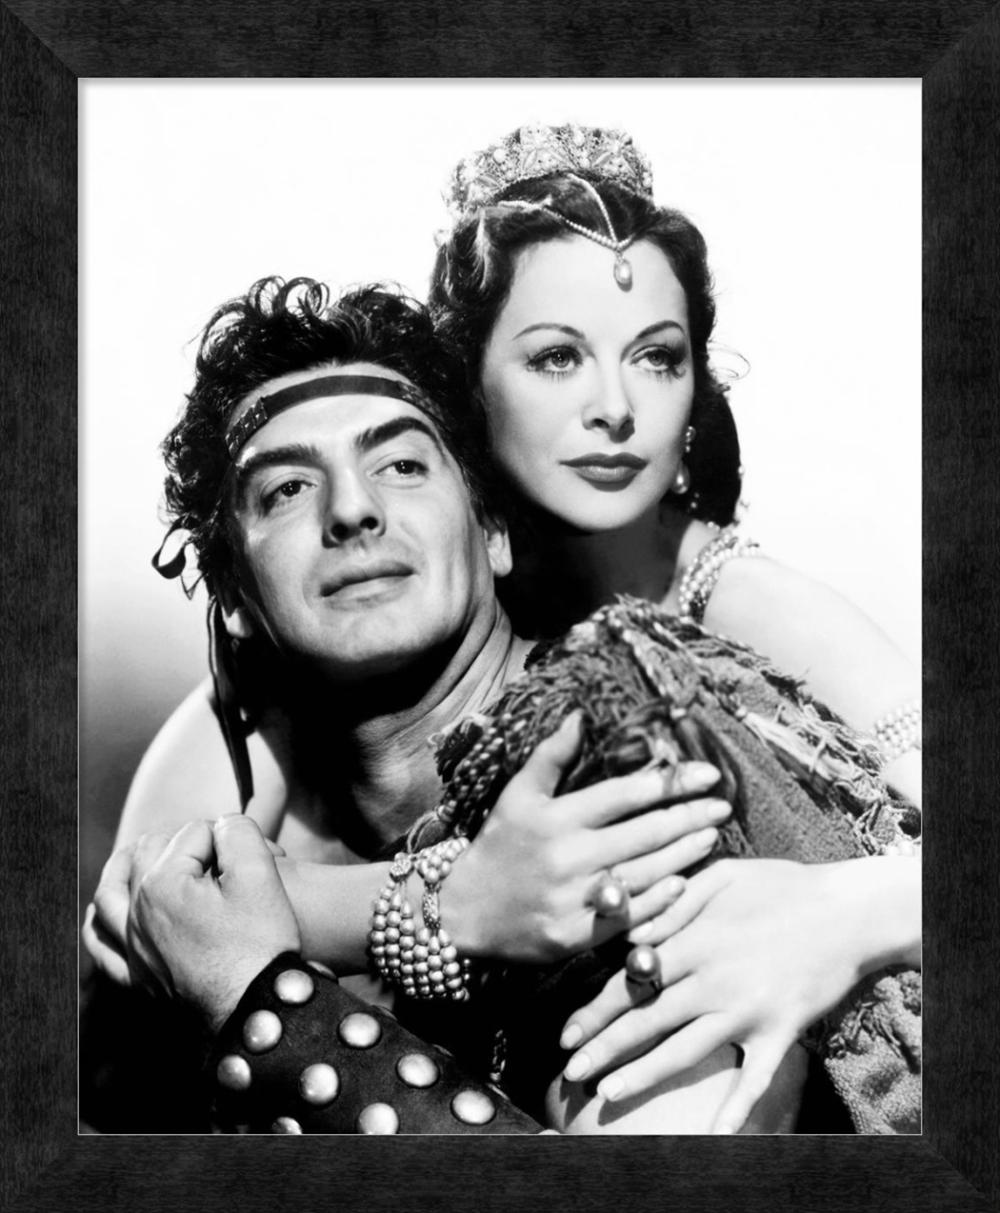 VICTOR MATURE - SAMSON AND DELILAH